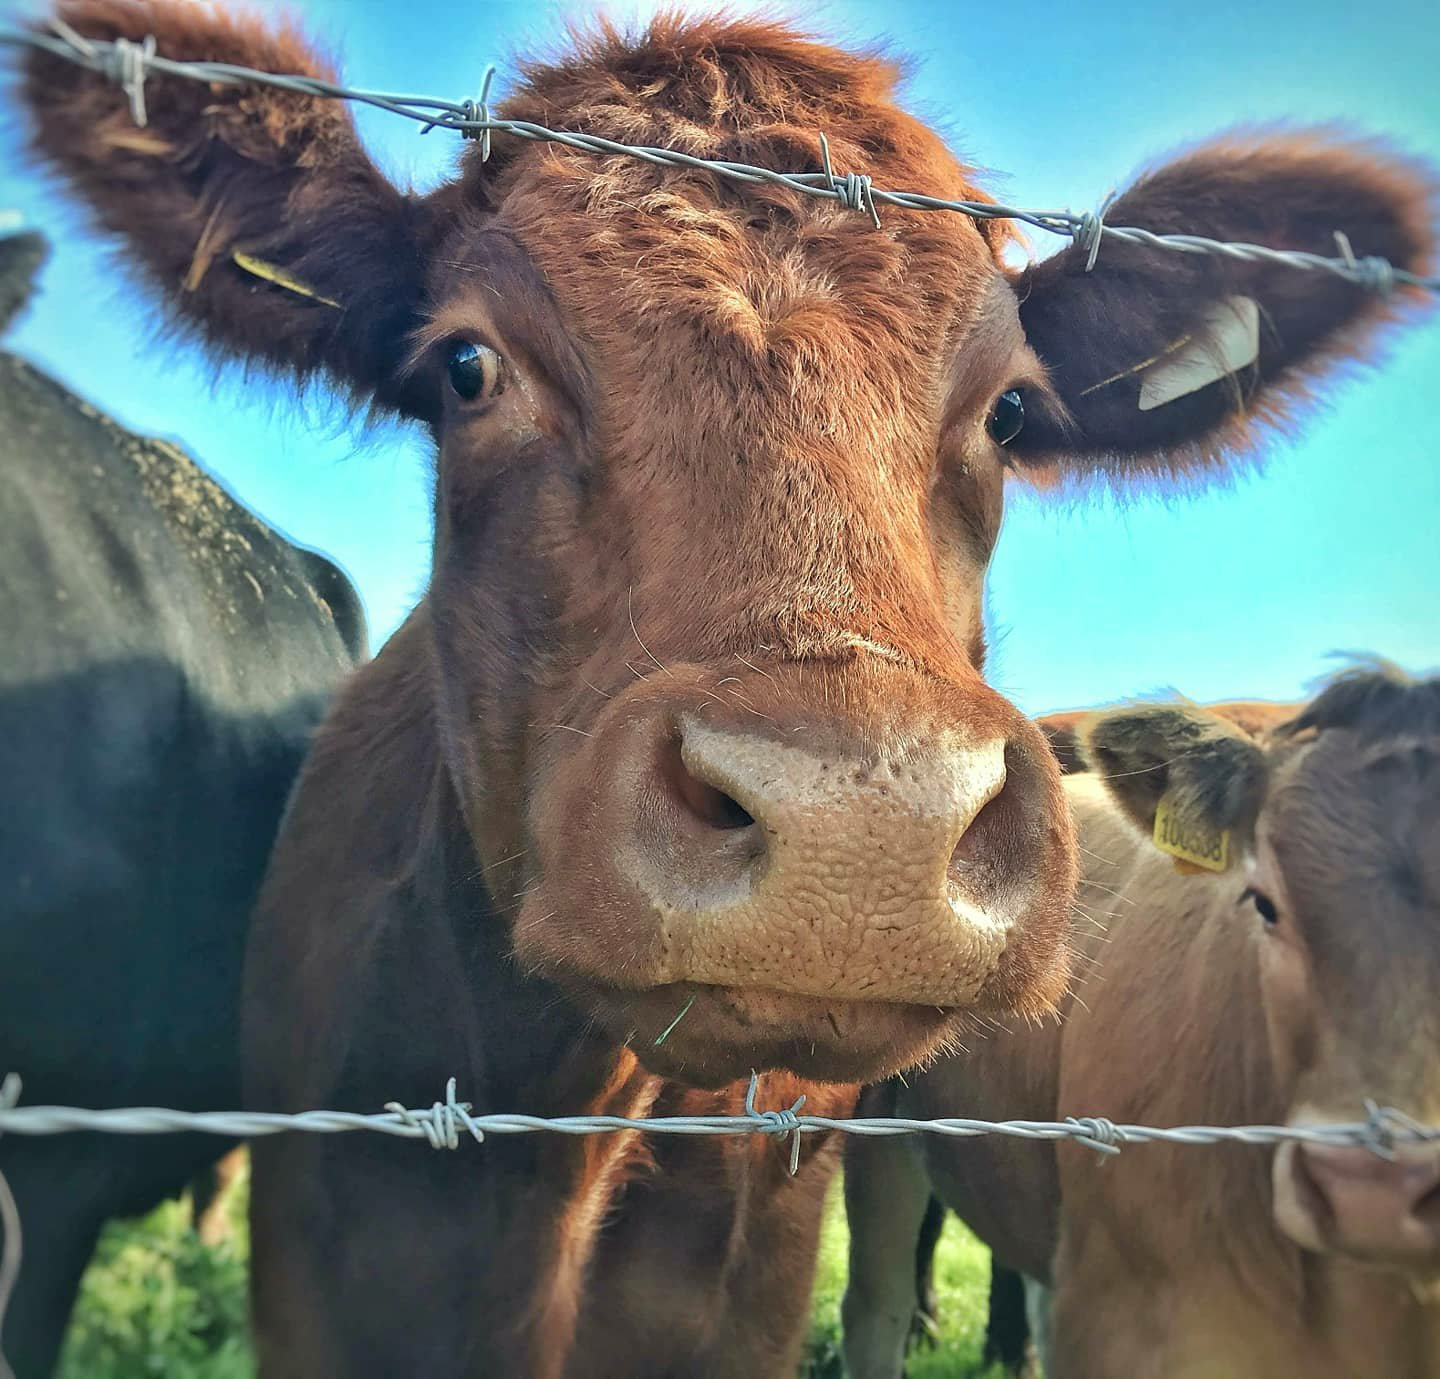 Orange cow's head peering down at the camera through a barbed wire fence from inside a field.